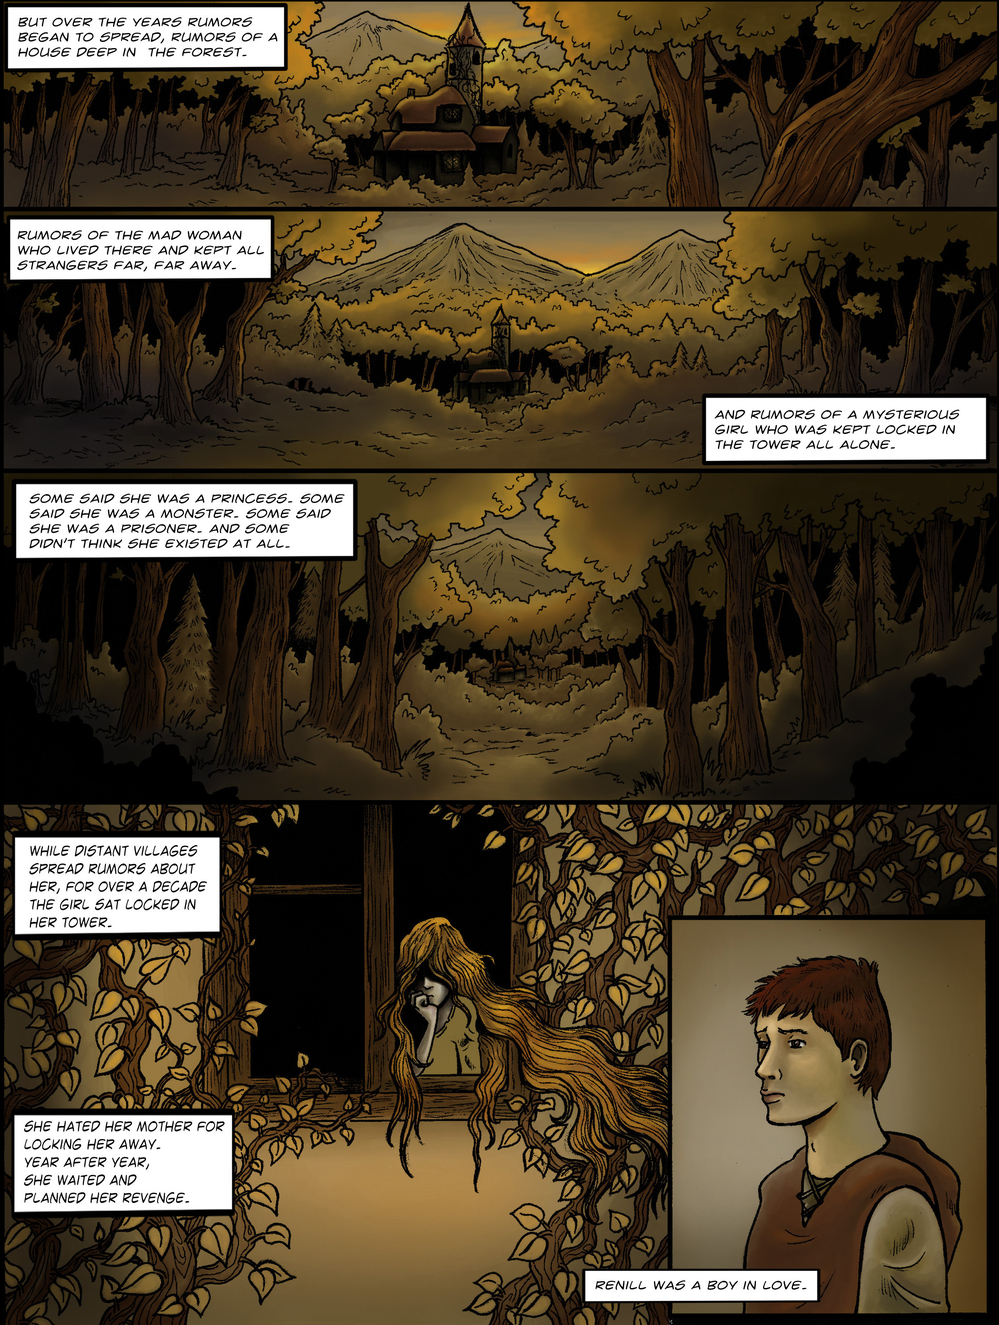 THE TOWER page 3 - story 1 in The Book of Lies